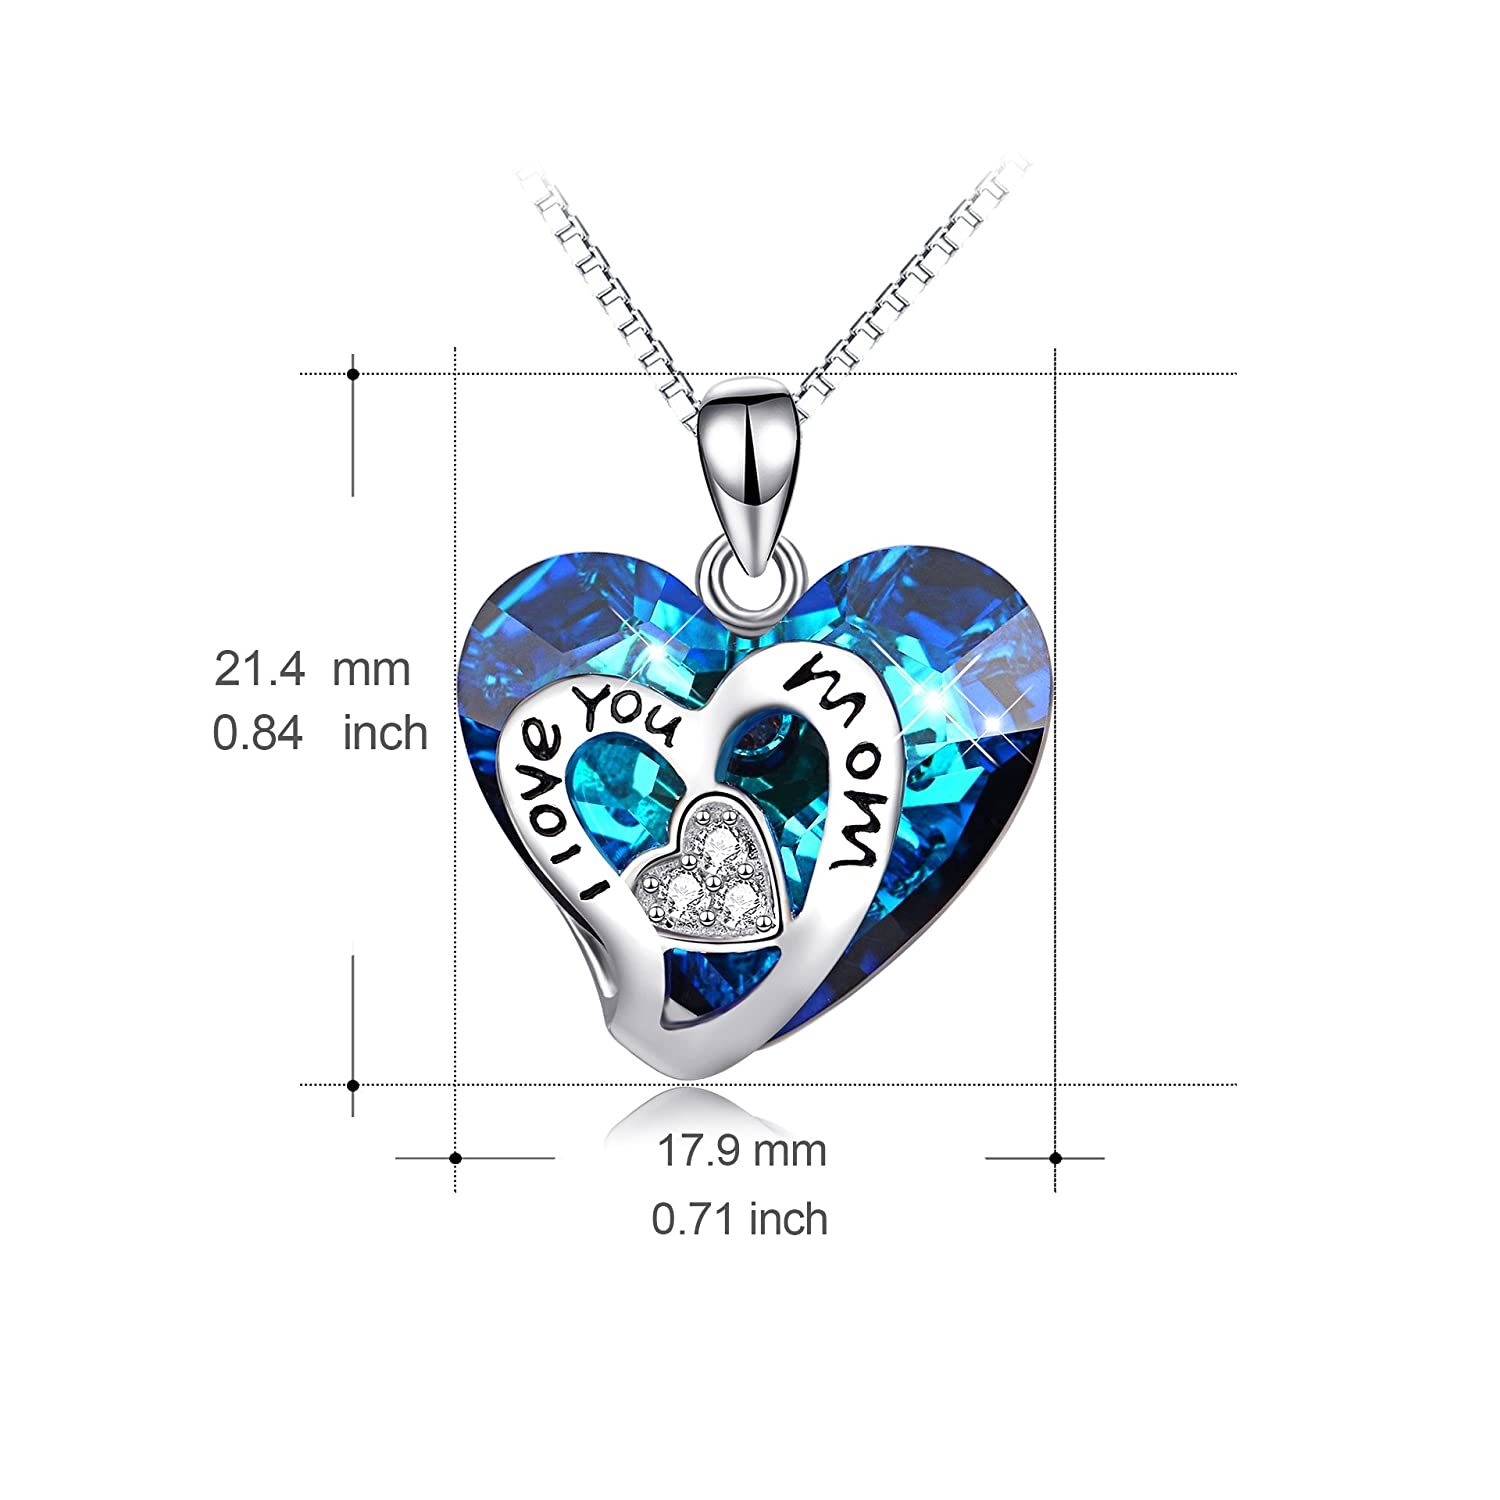 Fine Jewelry Collection Here Sterling Silver 925 18mm Heart Pendant With Fine Box Chain Necklace Real Silver Jewelry & Watches